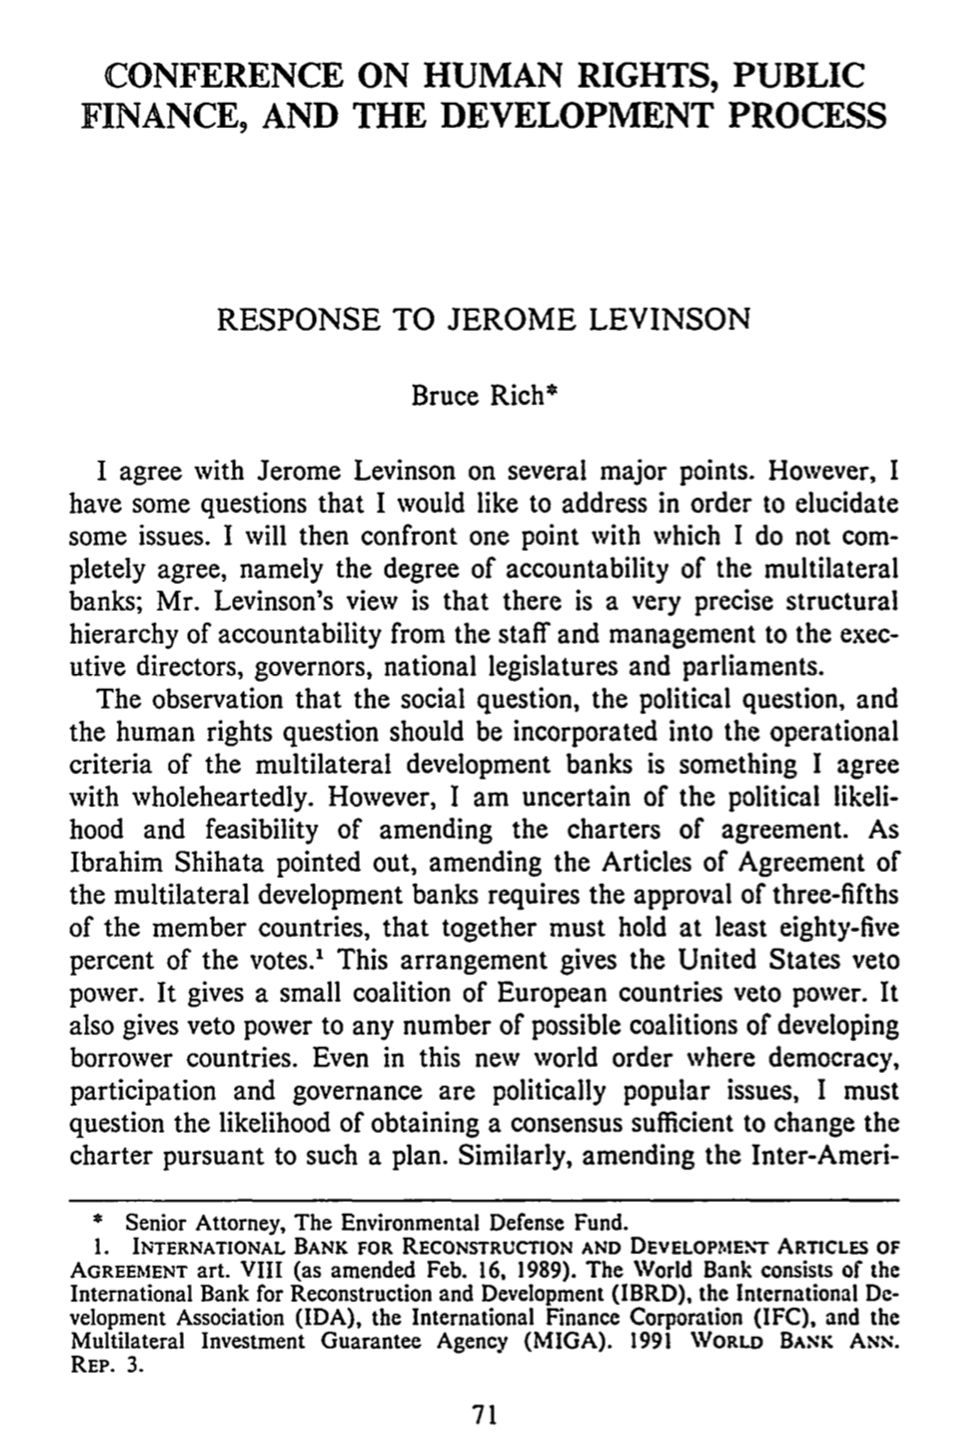 Response to Jerome Levinson [former Chief Counsel, Inter-American Development Bank}